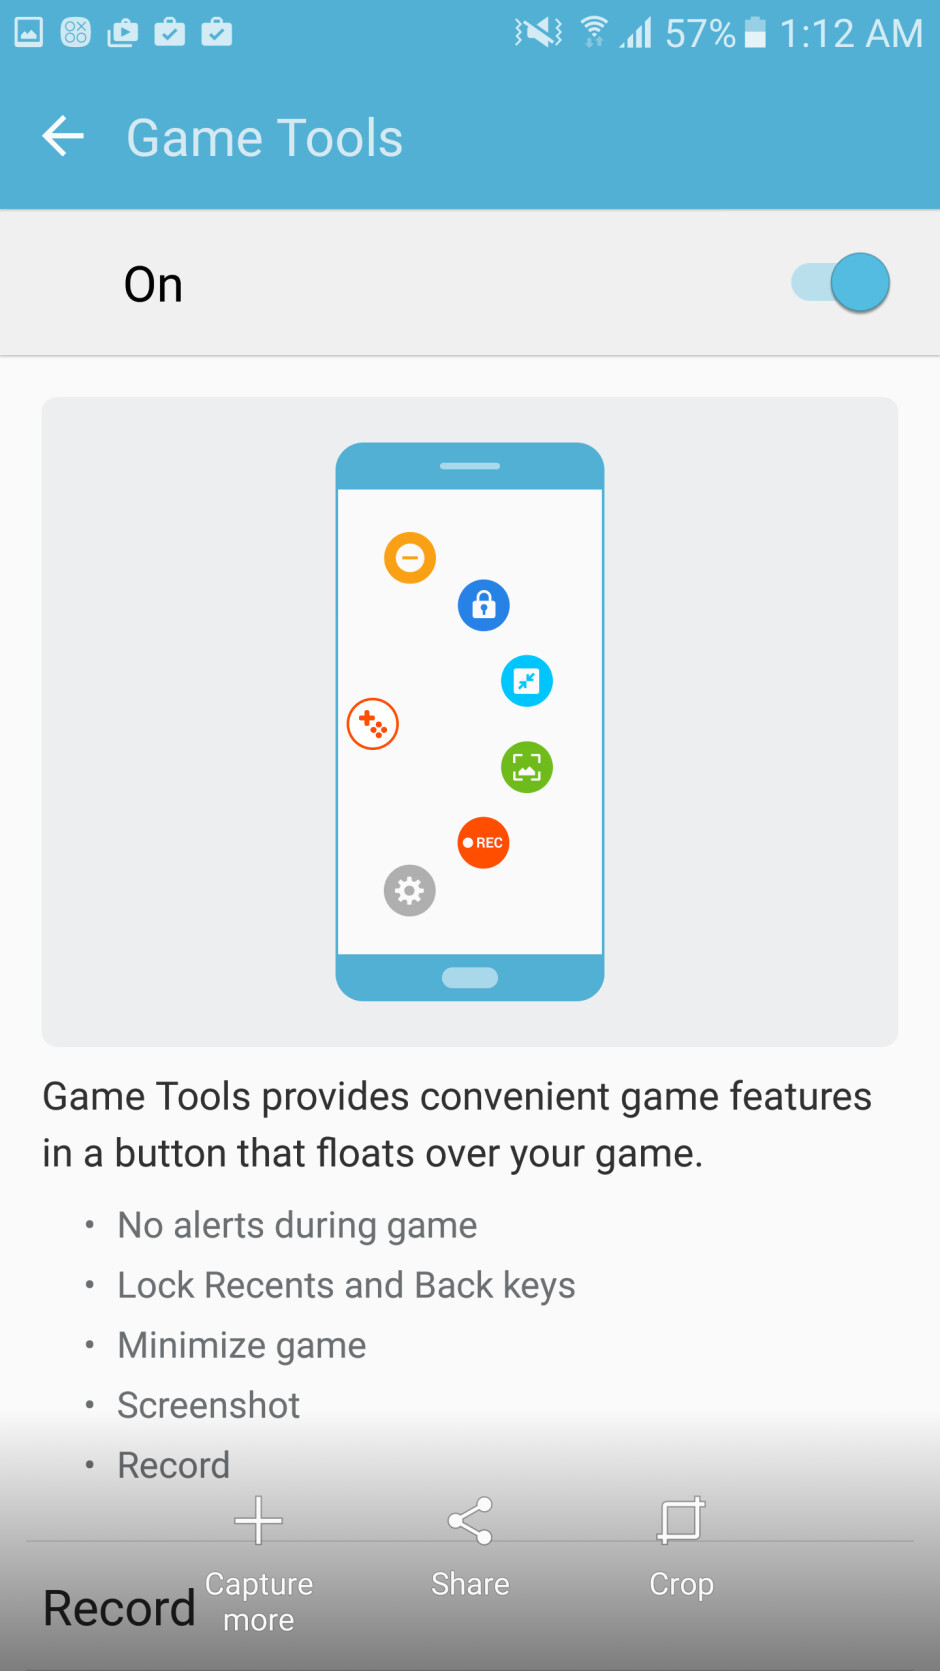 You can now use these goodies with non-gaming apps, too - How to use any app on your Samsung phone with Game Tools (record, minimize, mute notifications)